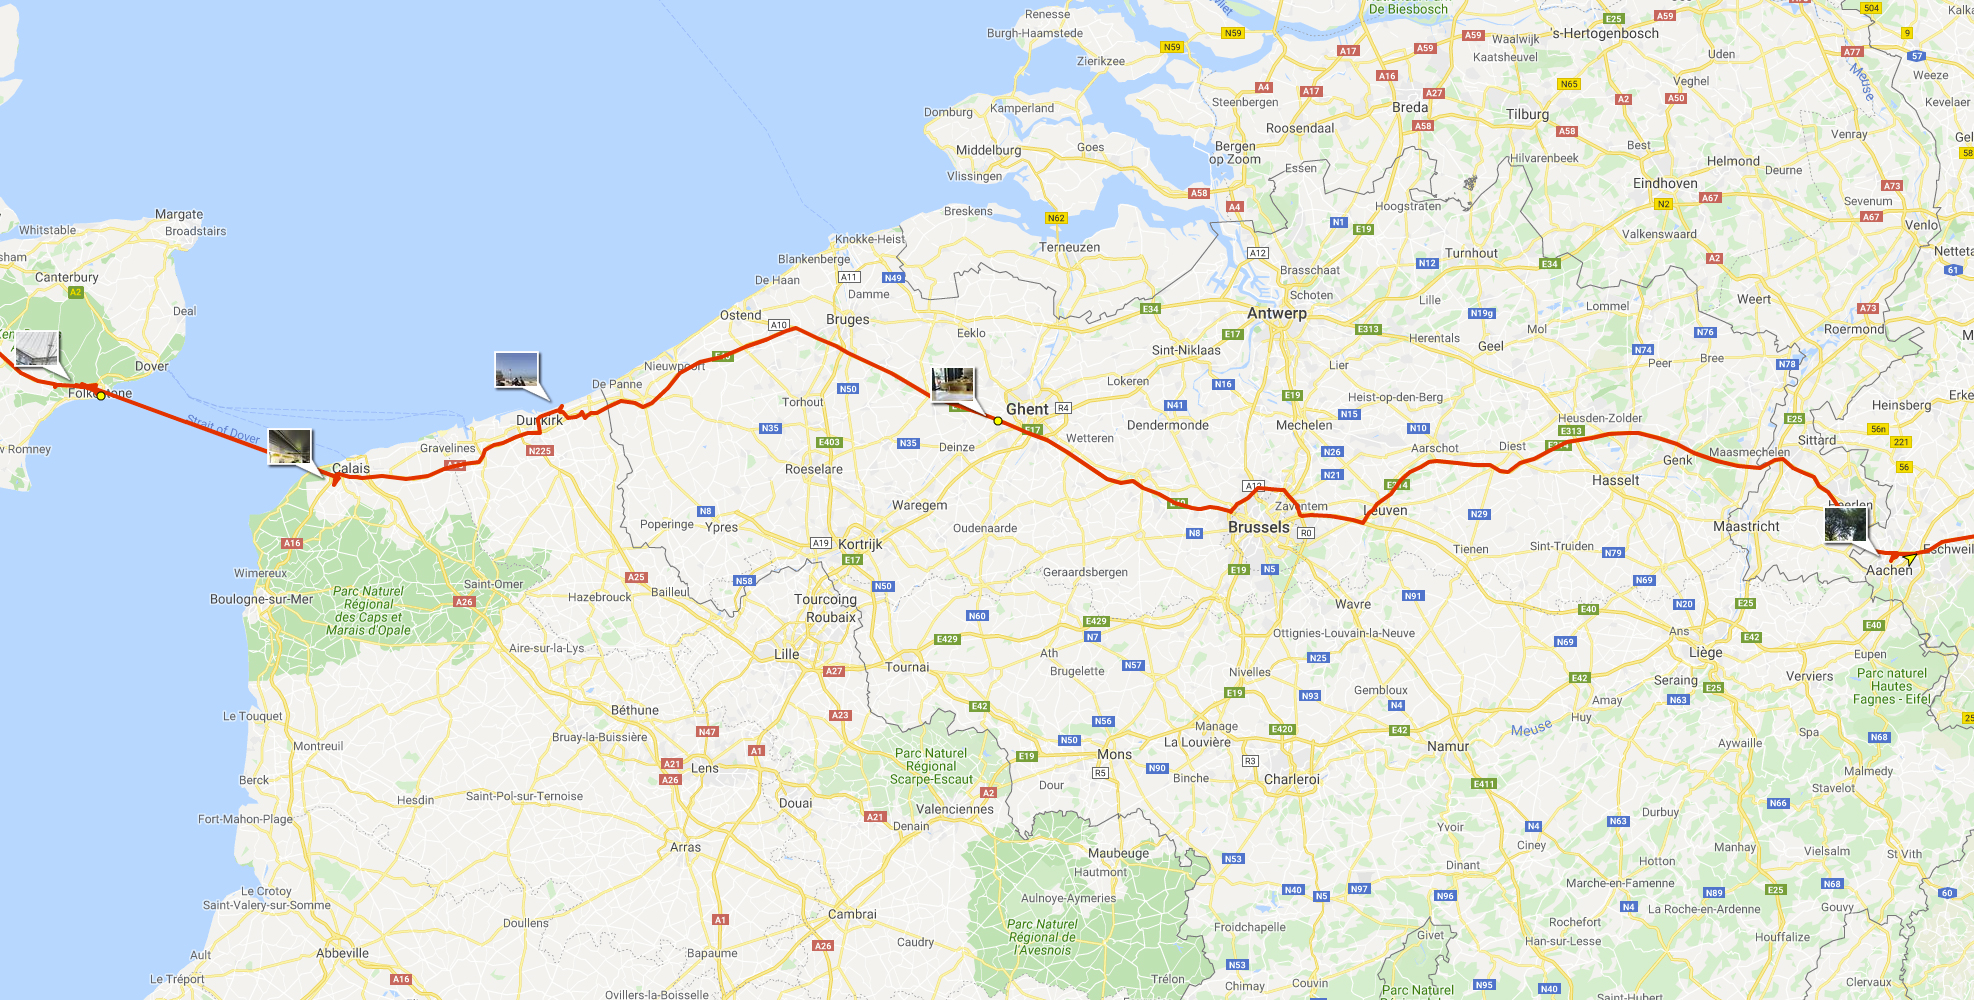 Going east: From Folkestone to Aachen